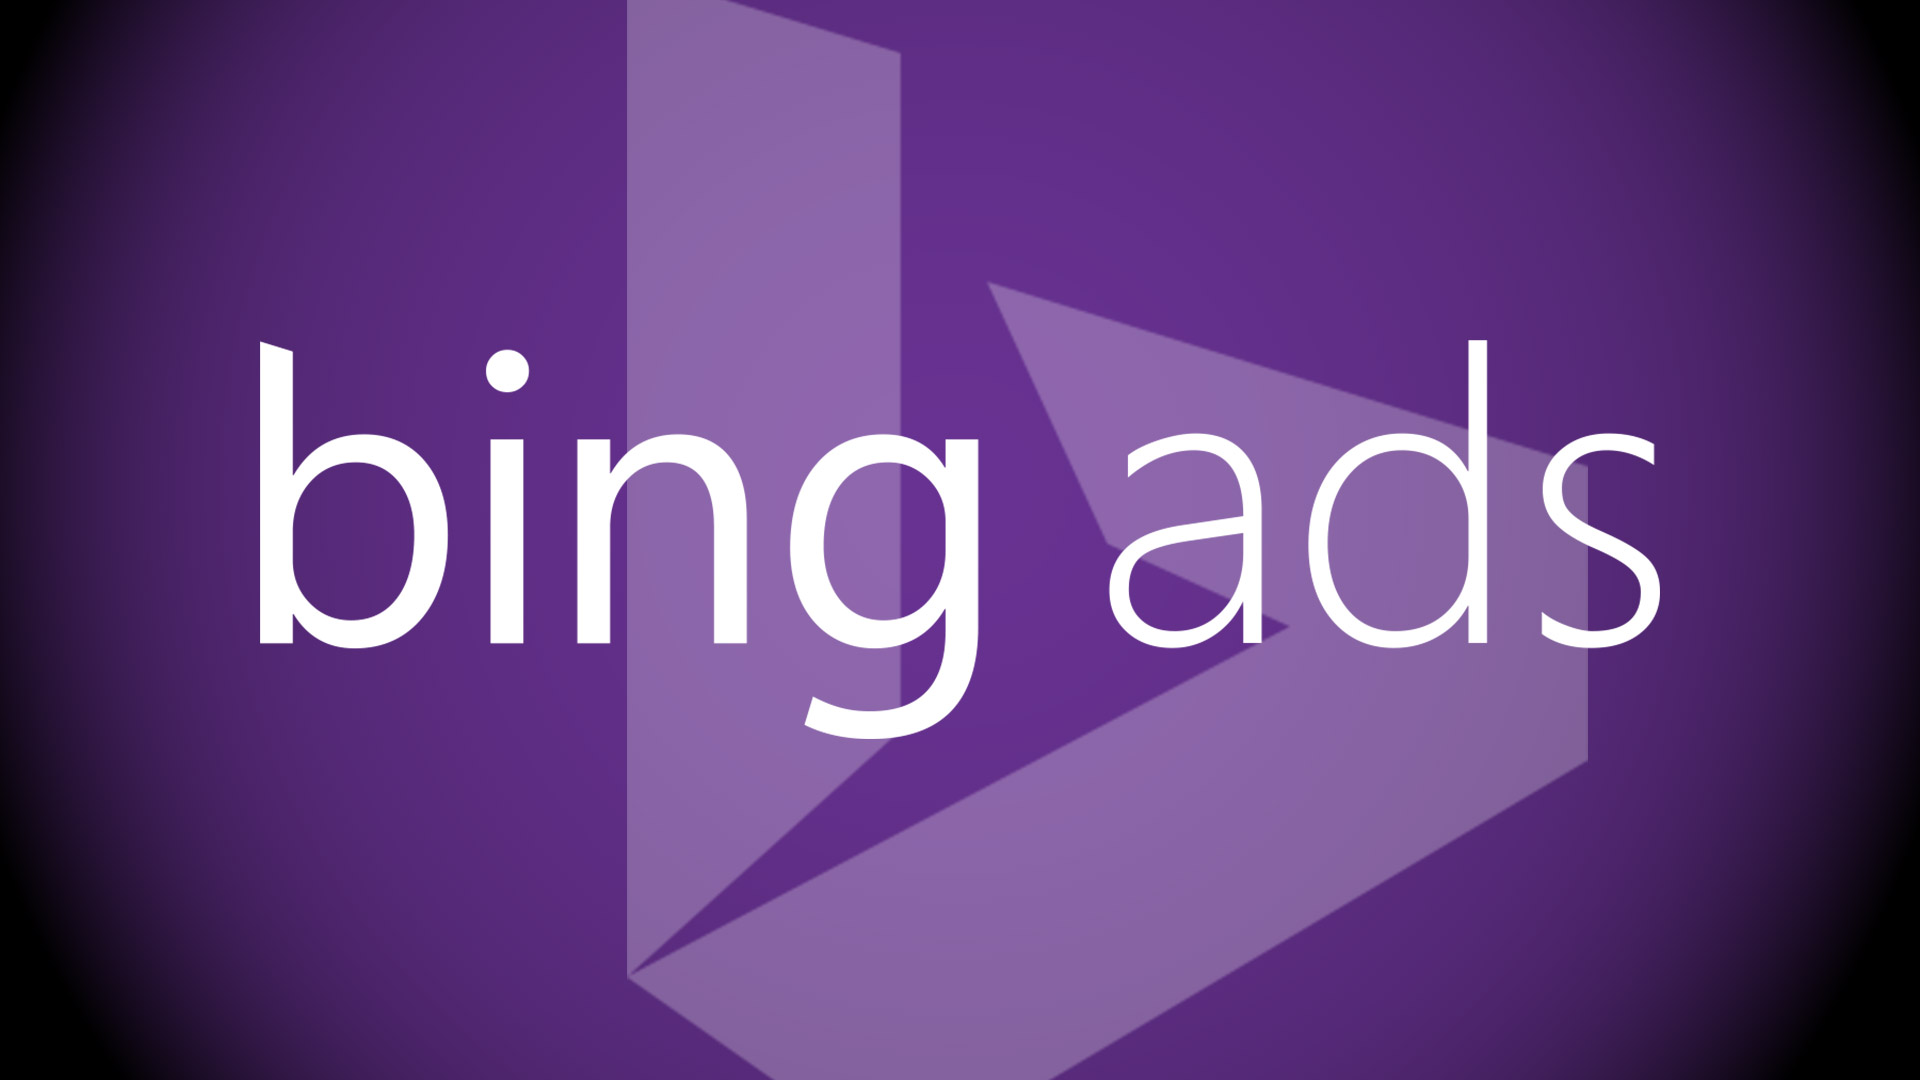 give you 2X bing ads coupons